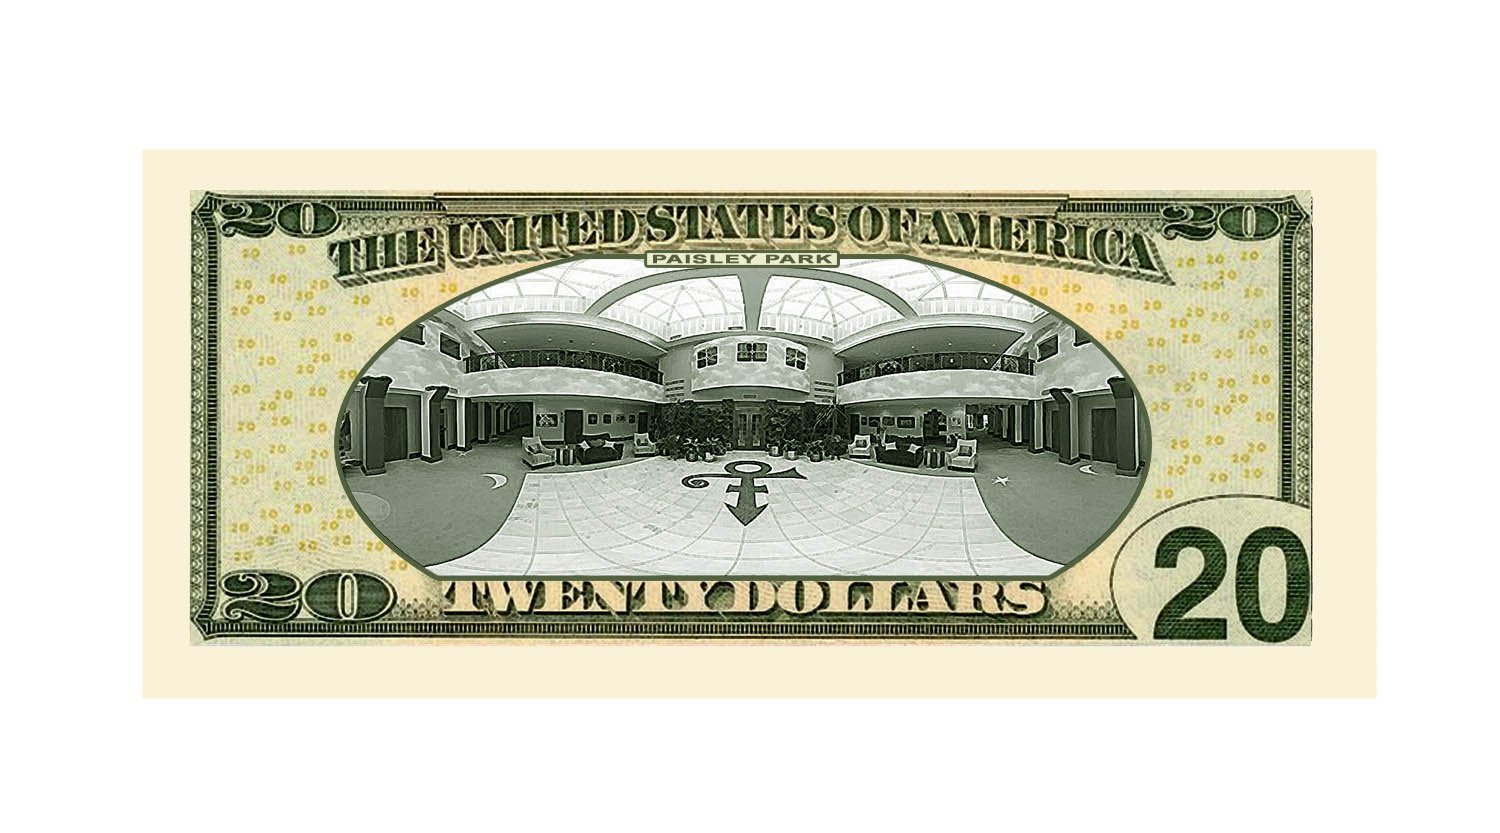 American Art Classics Prince $20.00 Limited Edition Novelty Twenty Dollar Collectible Bills - Pack of 100 - Best Gift Or Keepsake for Lovers of Prince by American Art Classics (Image #2)